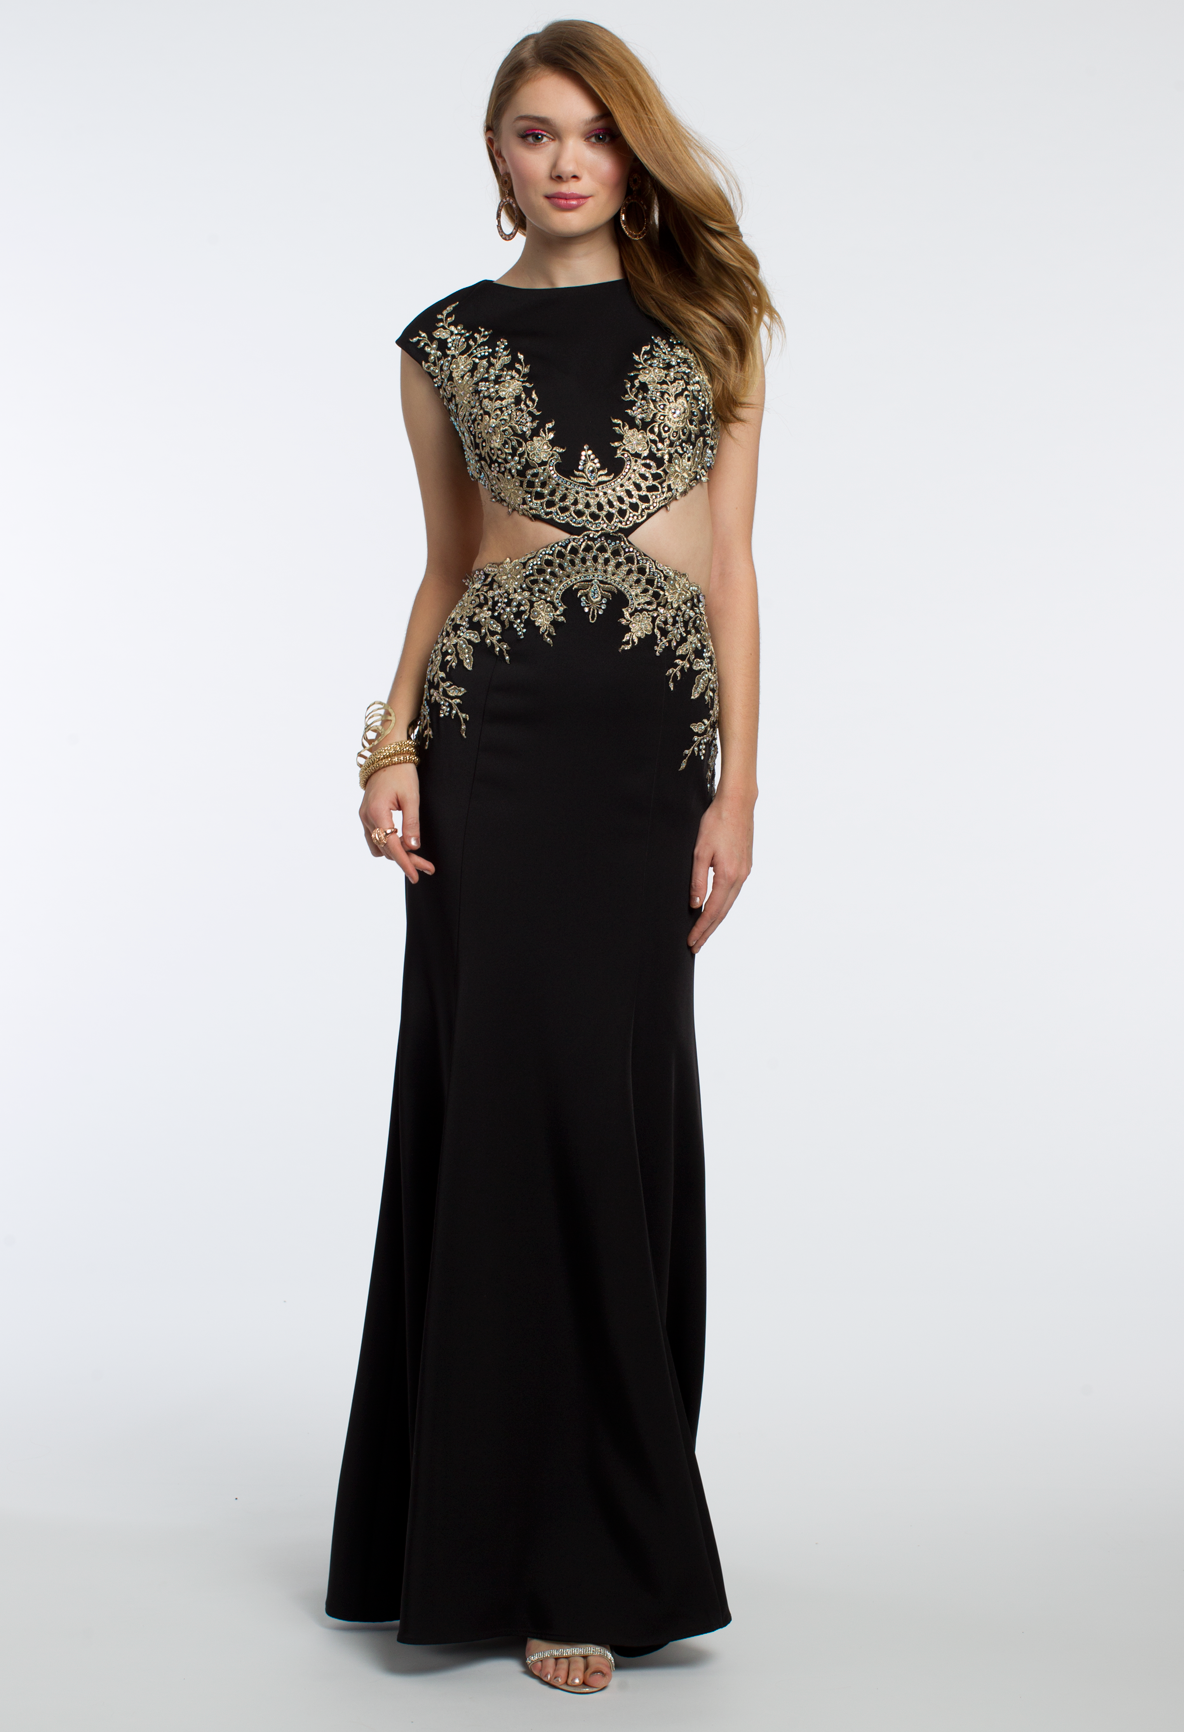 Go all out in headto toe embroidery with this vibrant long dress